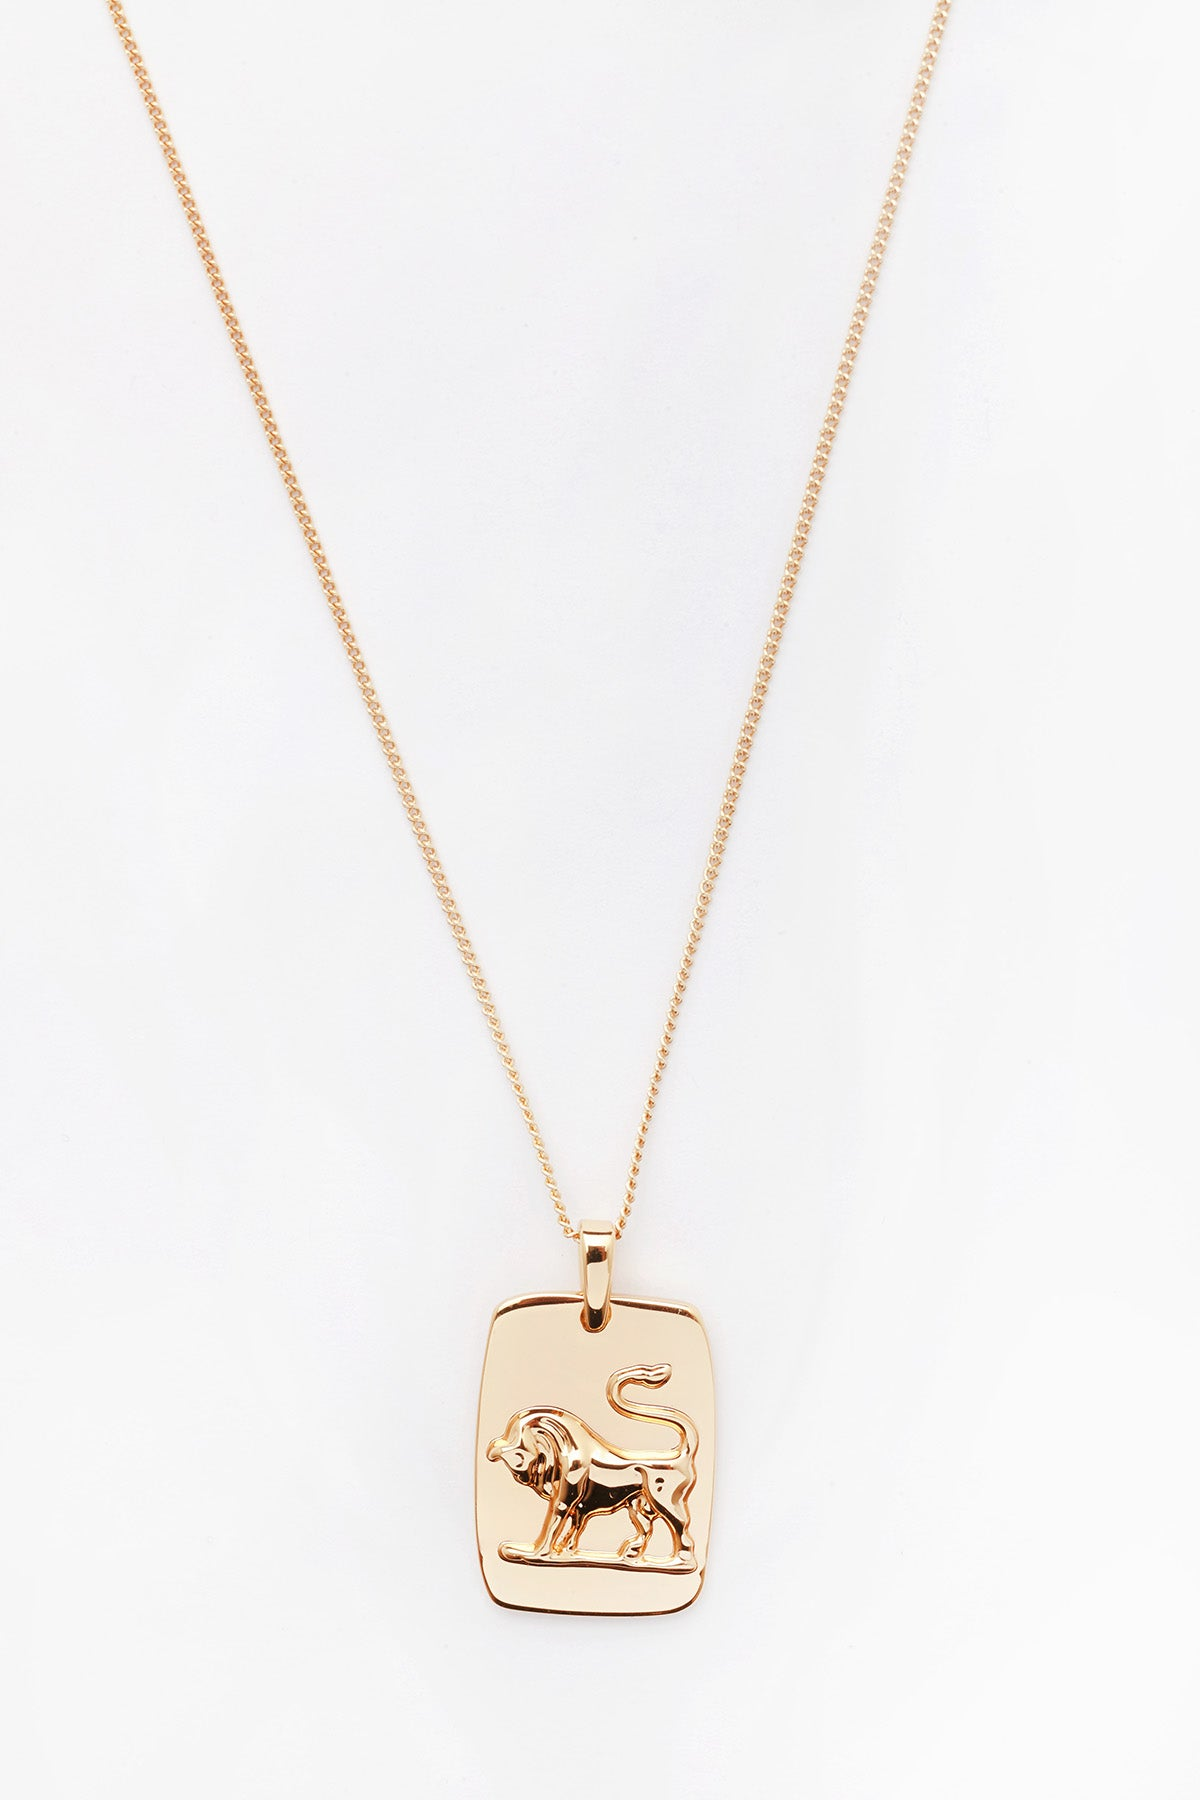 Zodiac Necklace Taurus